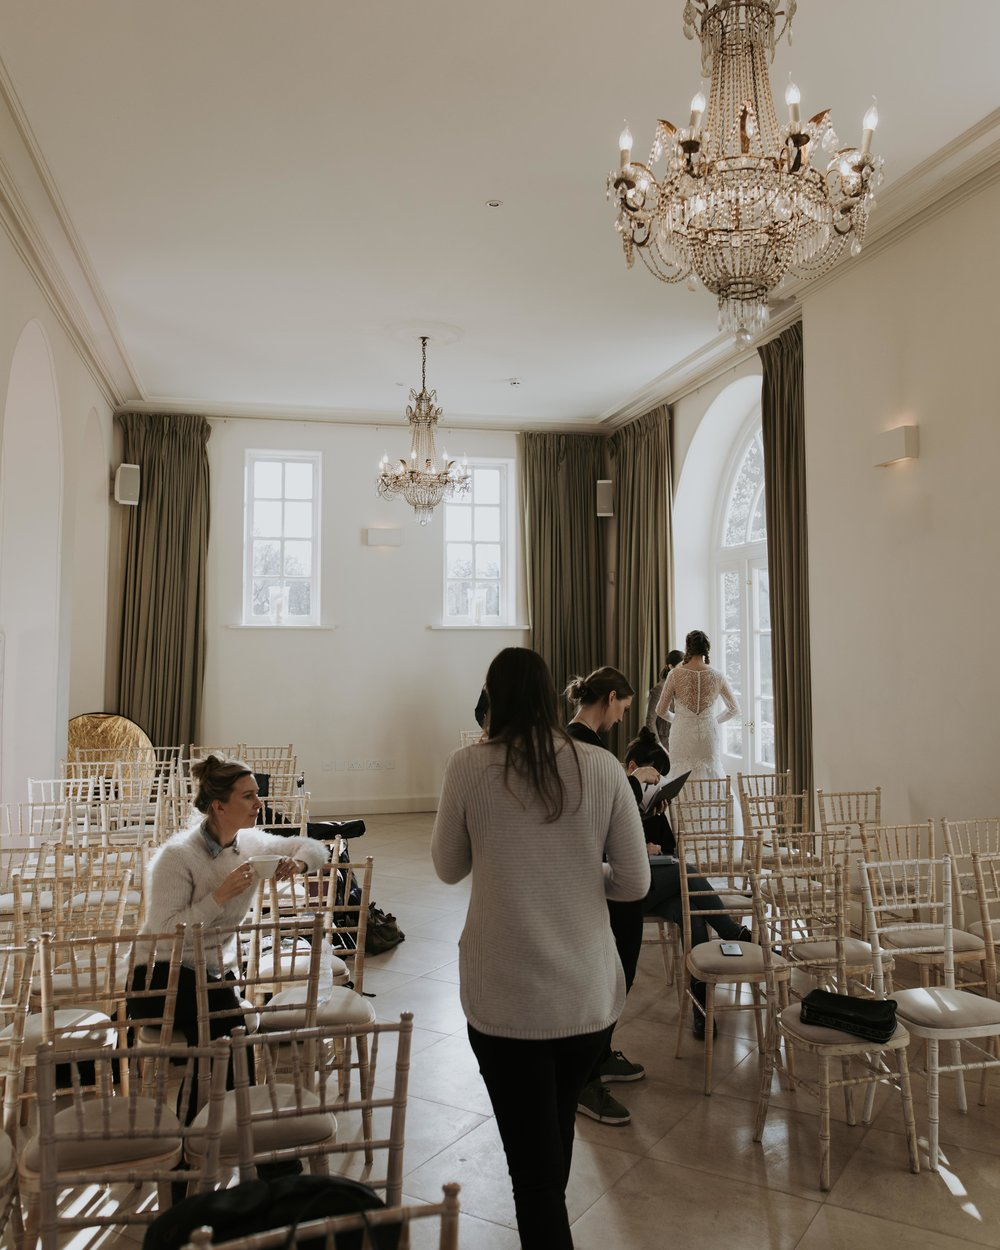 Behind the scenes in the ceremony room